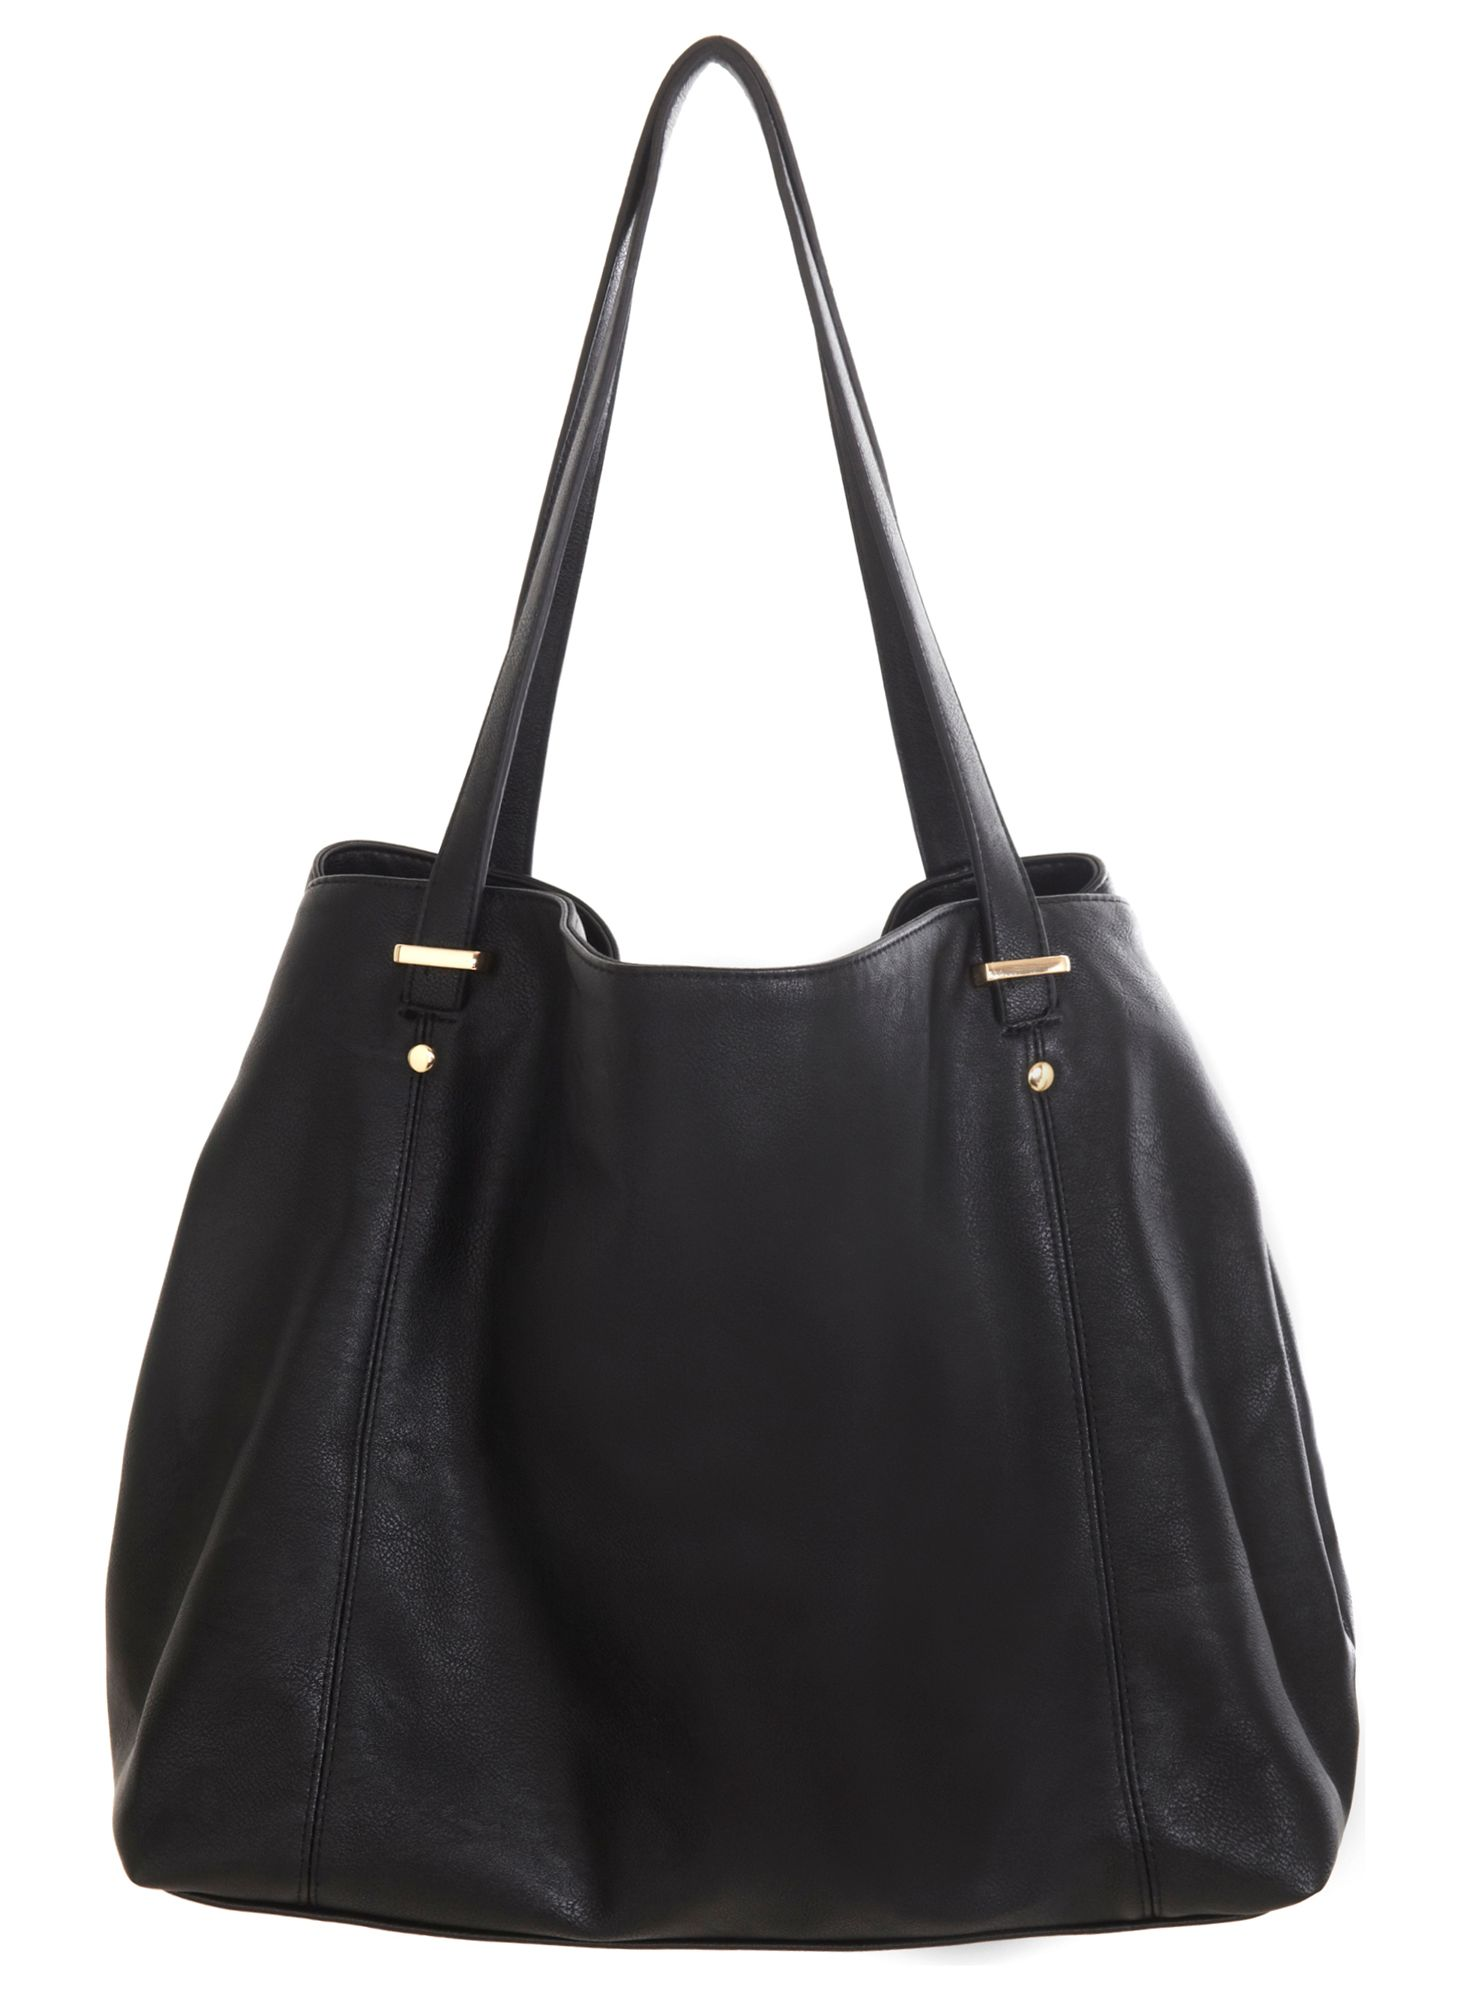 Slouchy shopper bag